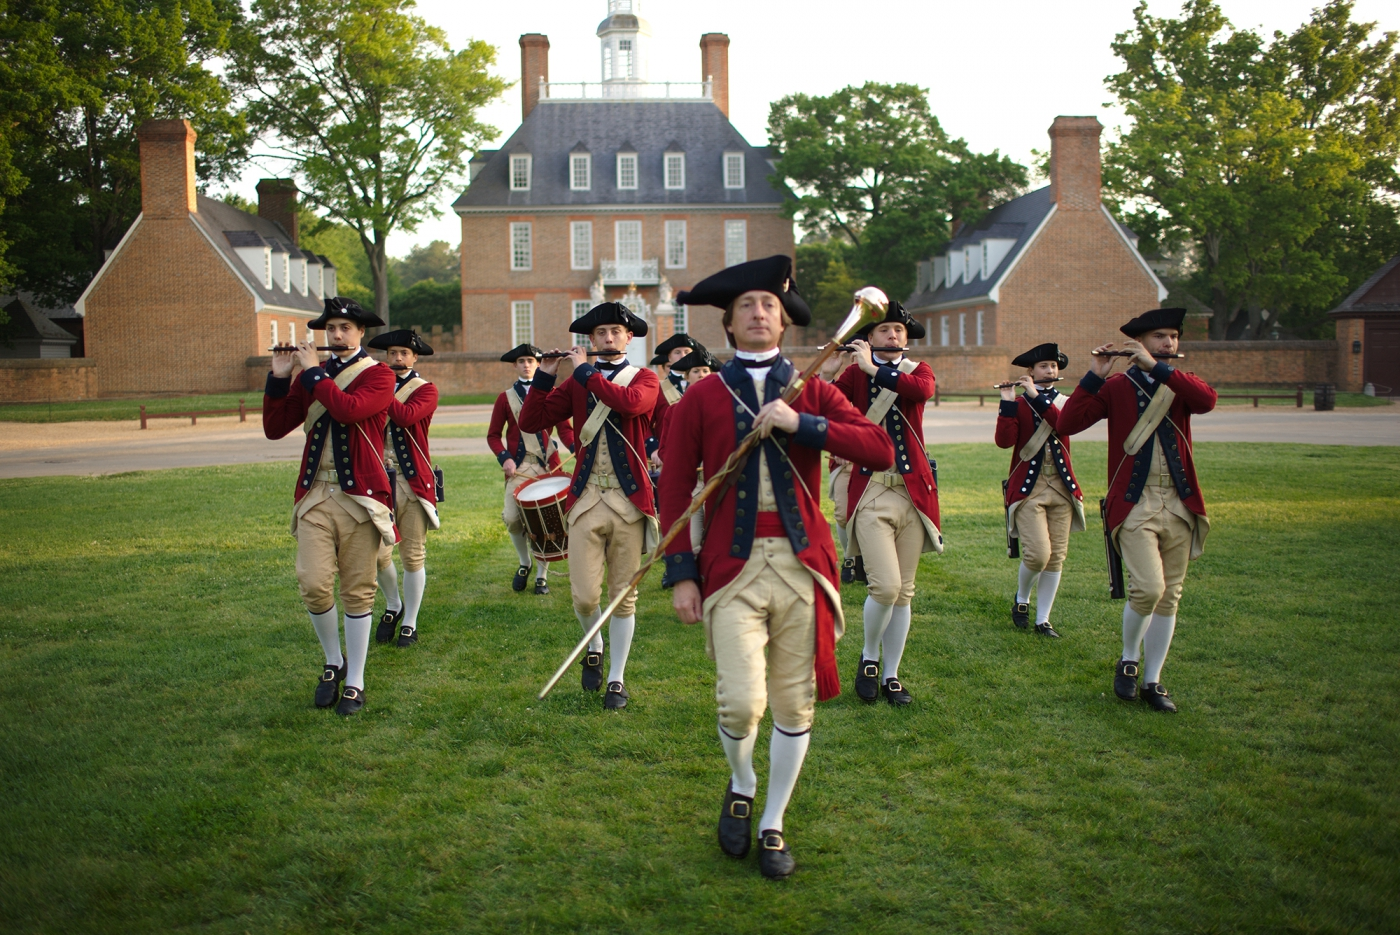 The Fife and Drums Corp of Colonial Williamsburg. ©CameronDavidson @CameronDavidson.com